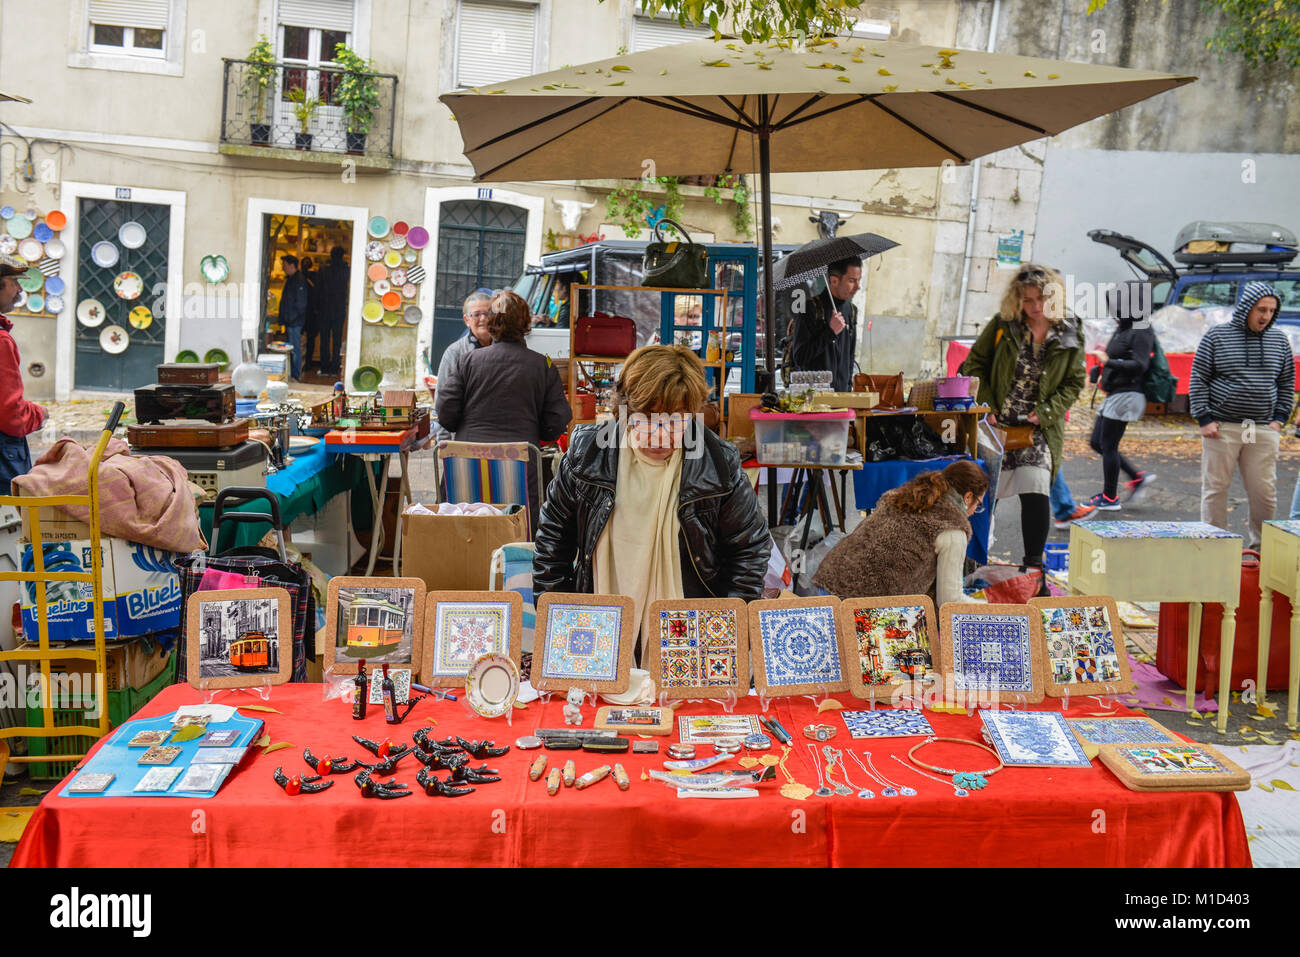 Flohmarkt Samstag Amsterdam Flohmarkt Stock Photos And Flohmarkt Stock Images Alamy